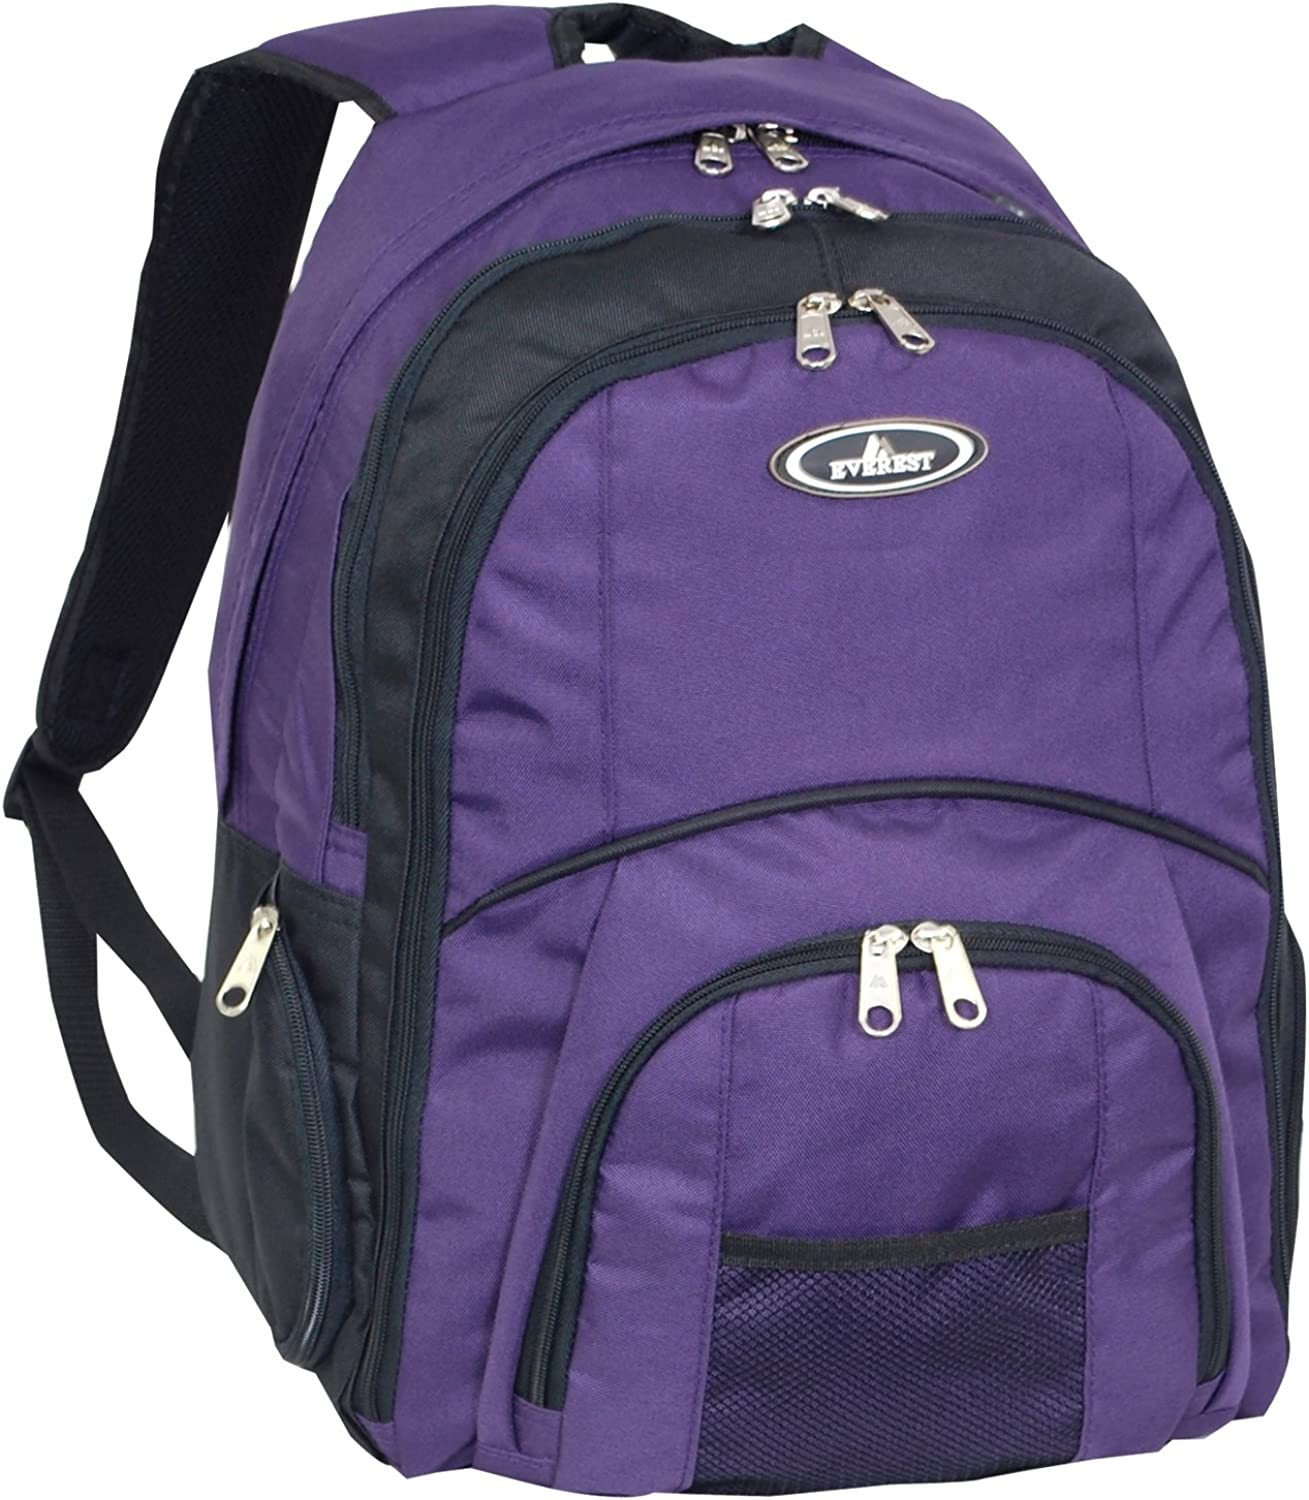 Everest Laptop Computer Backpack, Eggplant Purple, One Size